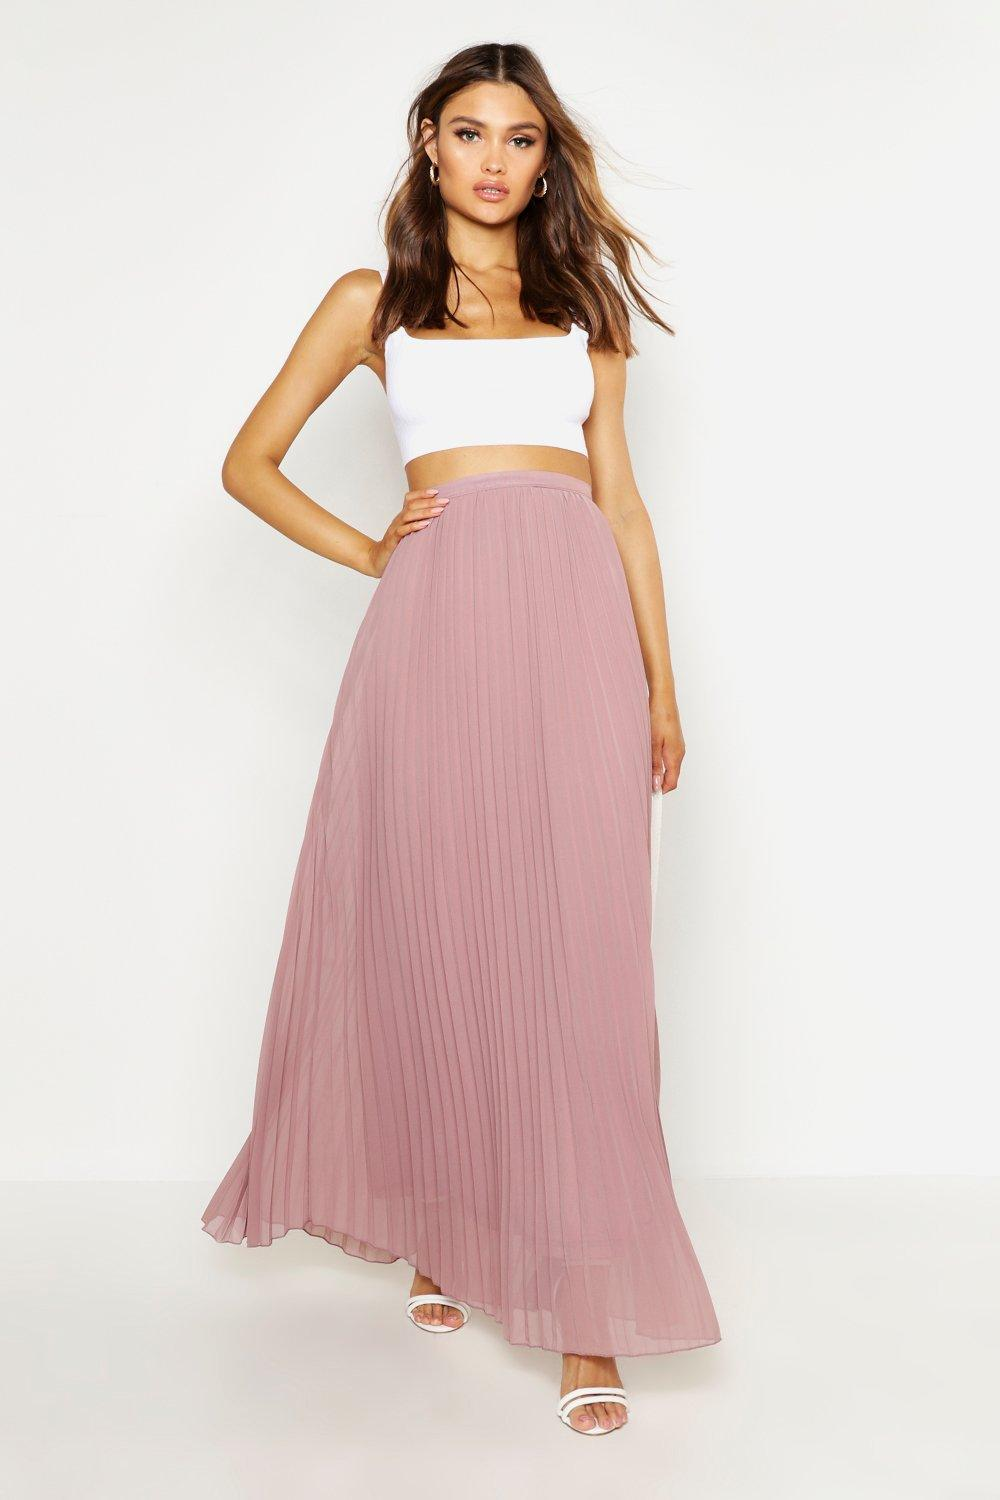 Shop Womens Skirts at Surf Fanatics. Our Surf Shop has the newest Maxi Skirt selection including Beach Skirts for ladies who love the beach life. Shop for Juniors Skirts at our Surf Store and get Free Shipping on every order of $50 or more.